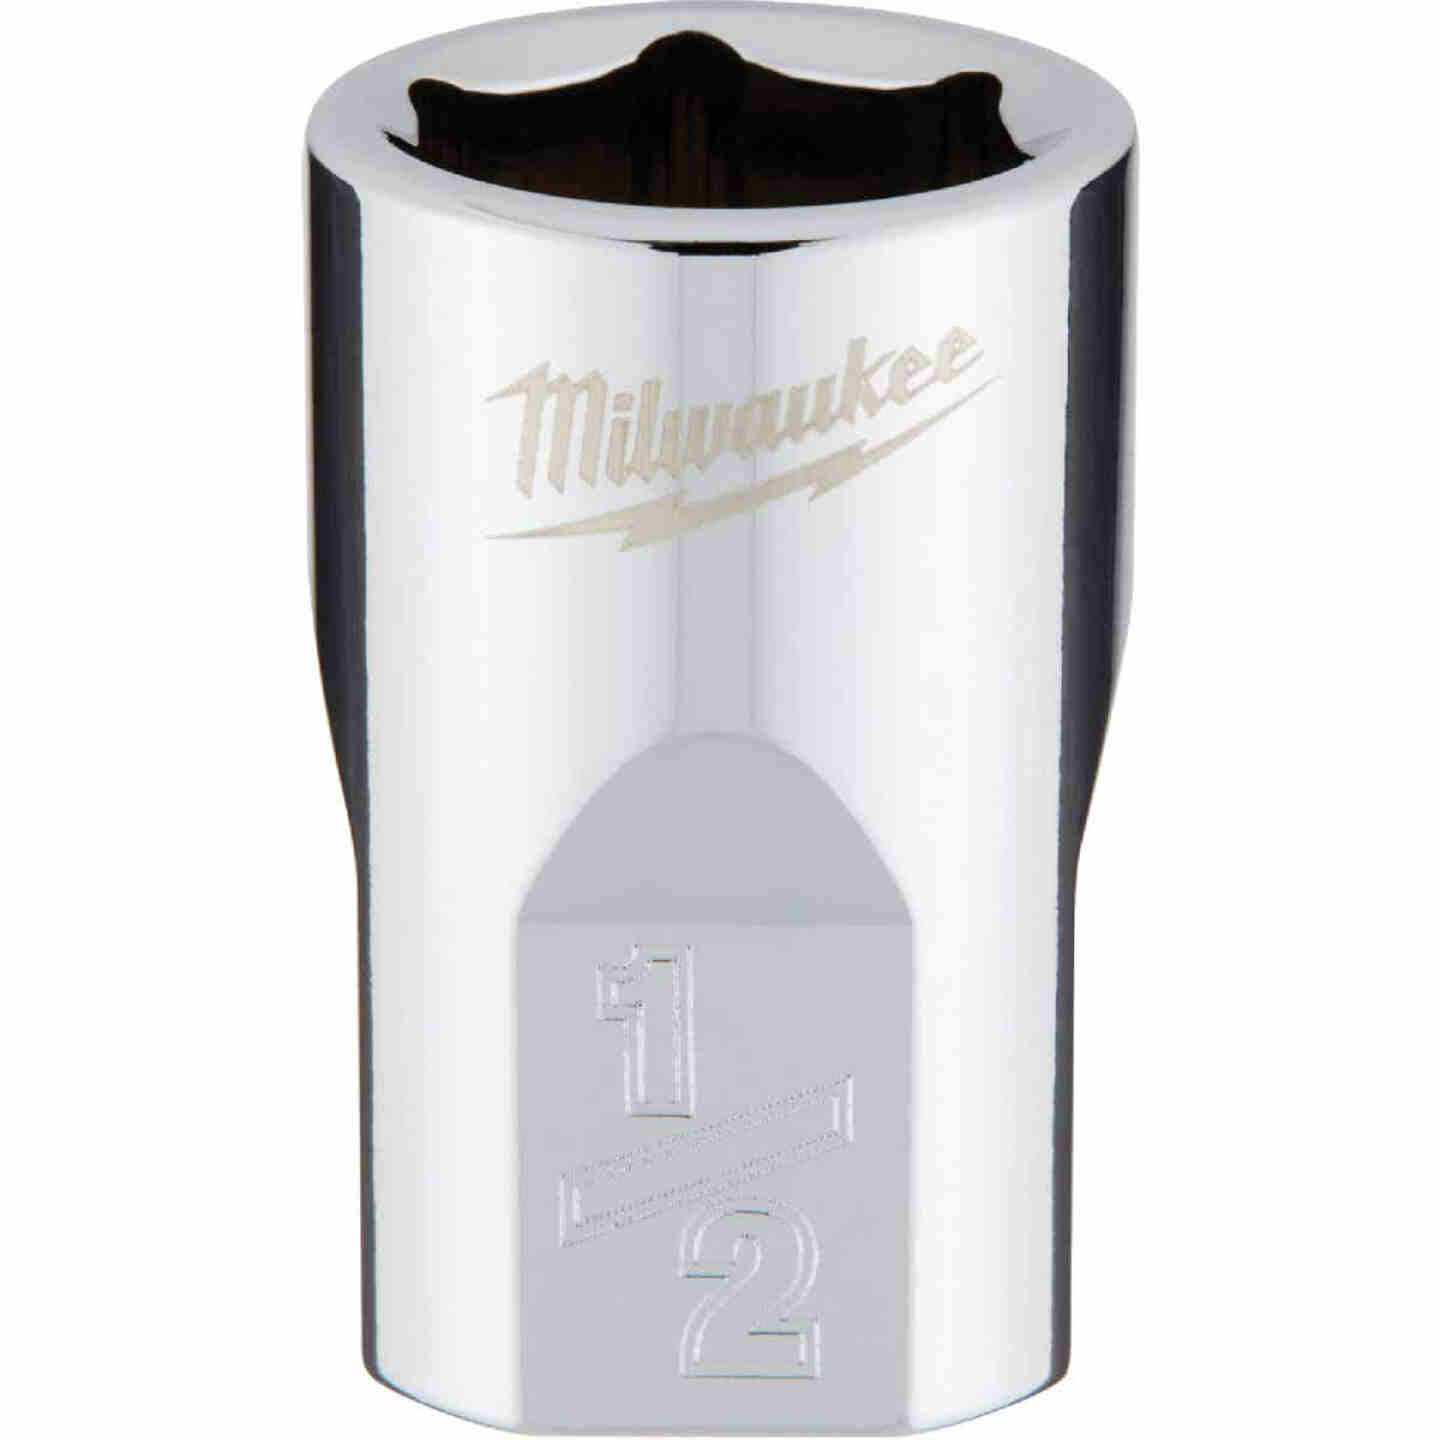 Milwaukee 3/8 In. Drive 1/2 In. 6-Point Shallow Standard Socket with FOUR FLAT Sides Image 1